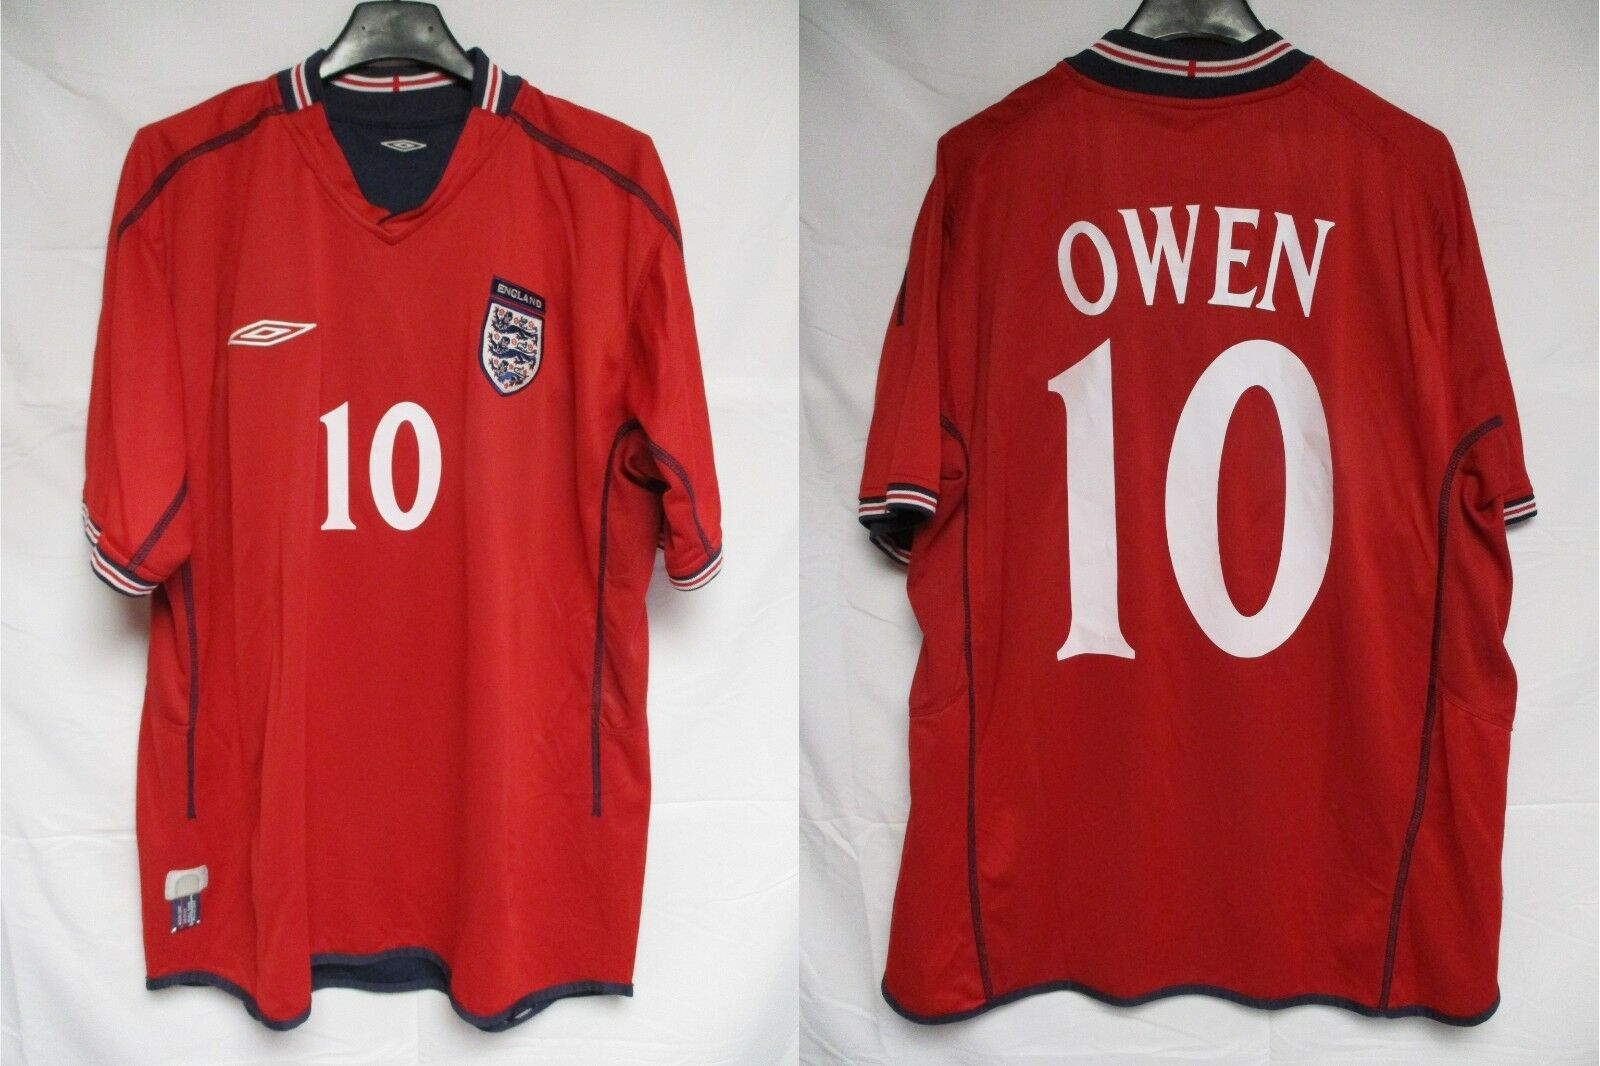 Maillot ANGLETERRE ENGLAND shirt OWEN 10 vintage UMBRO World Cup 2002 jersey XL